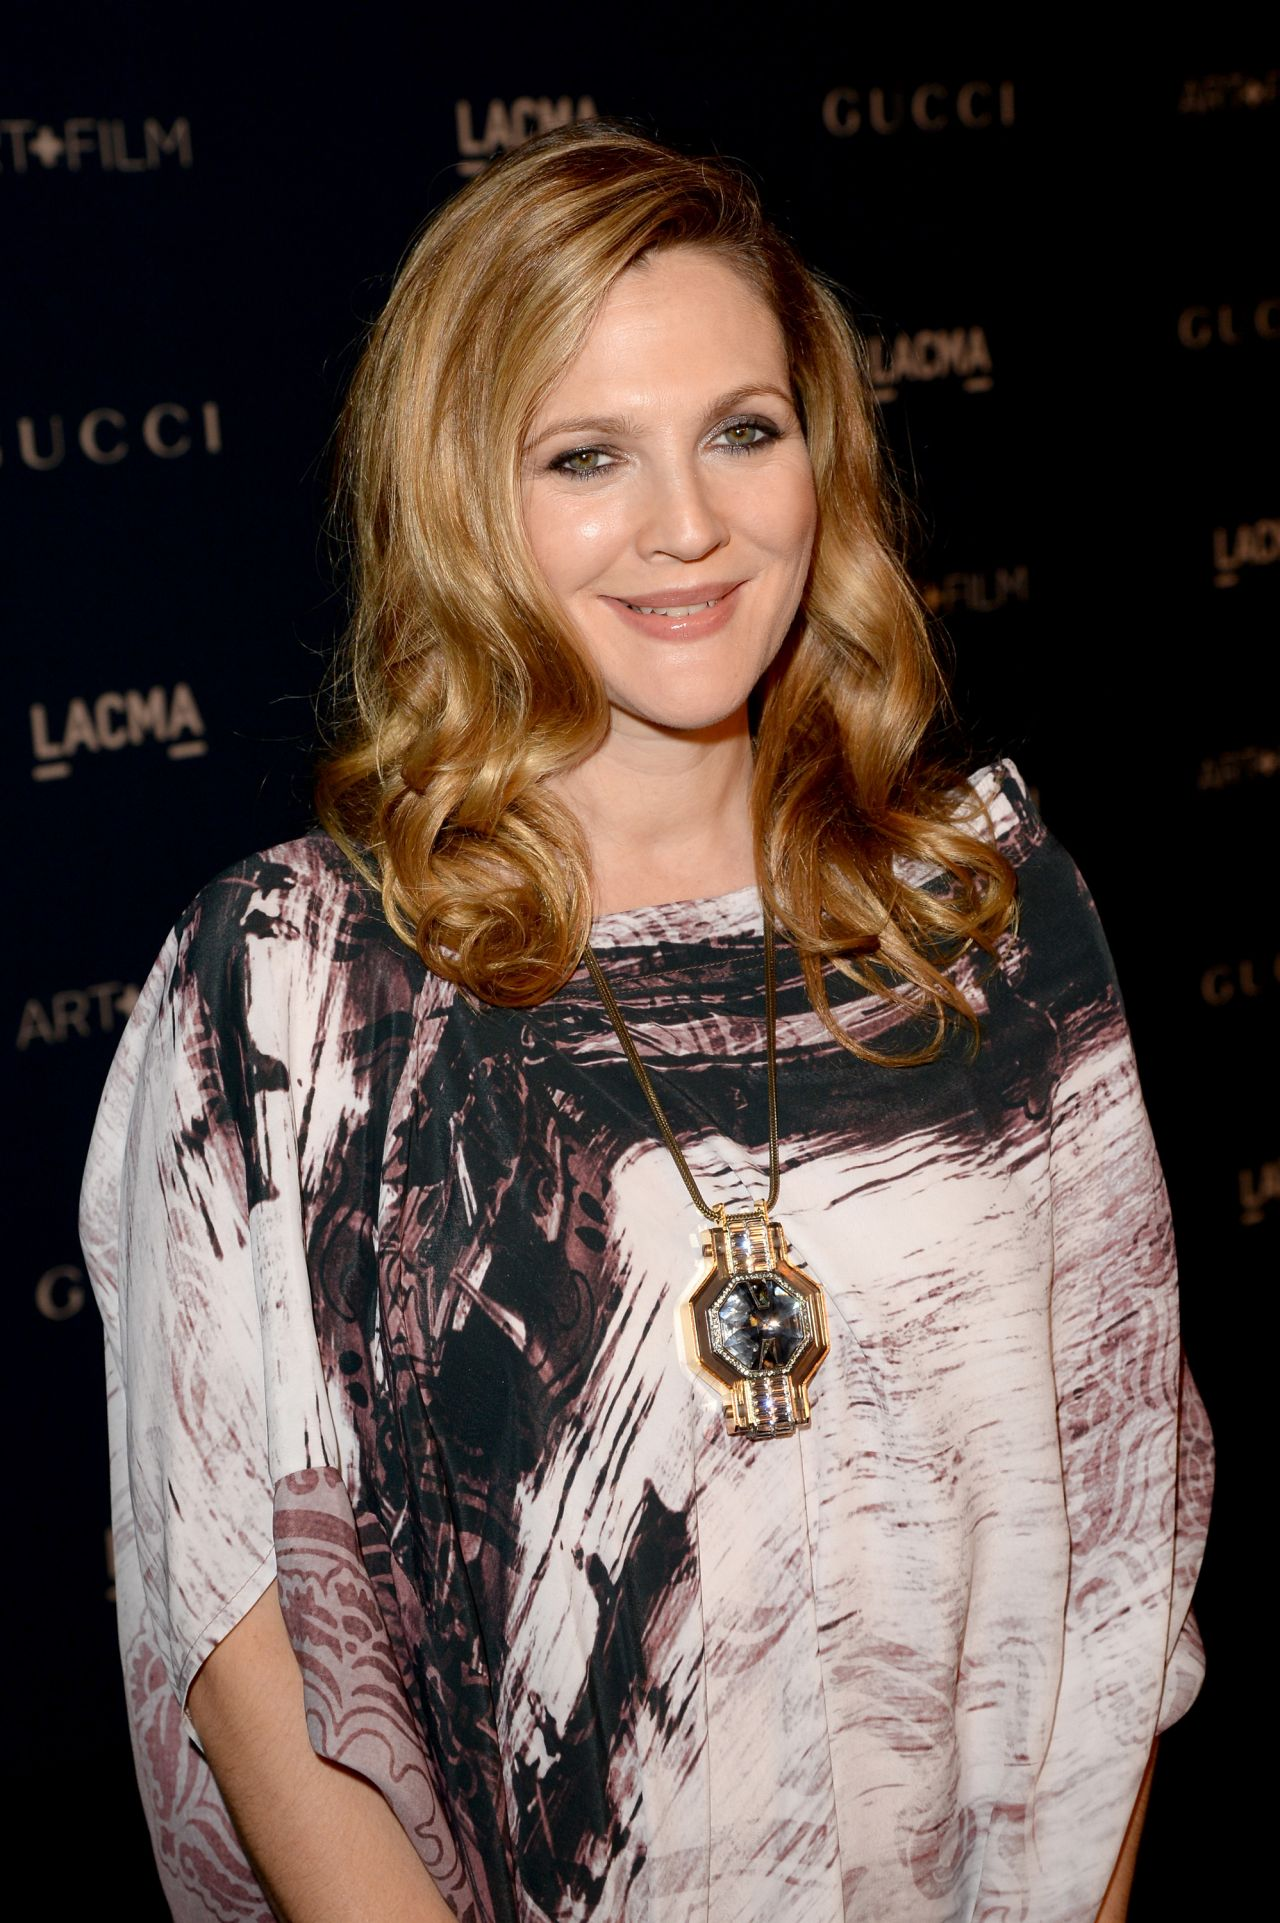 Drew Barrymore on Red Carpet - LACMA 2013 Art and Film Gala in Los Angeles